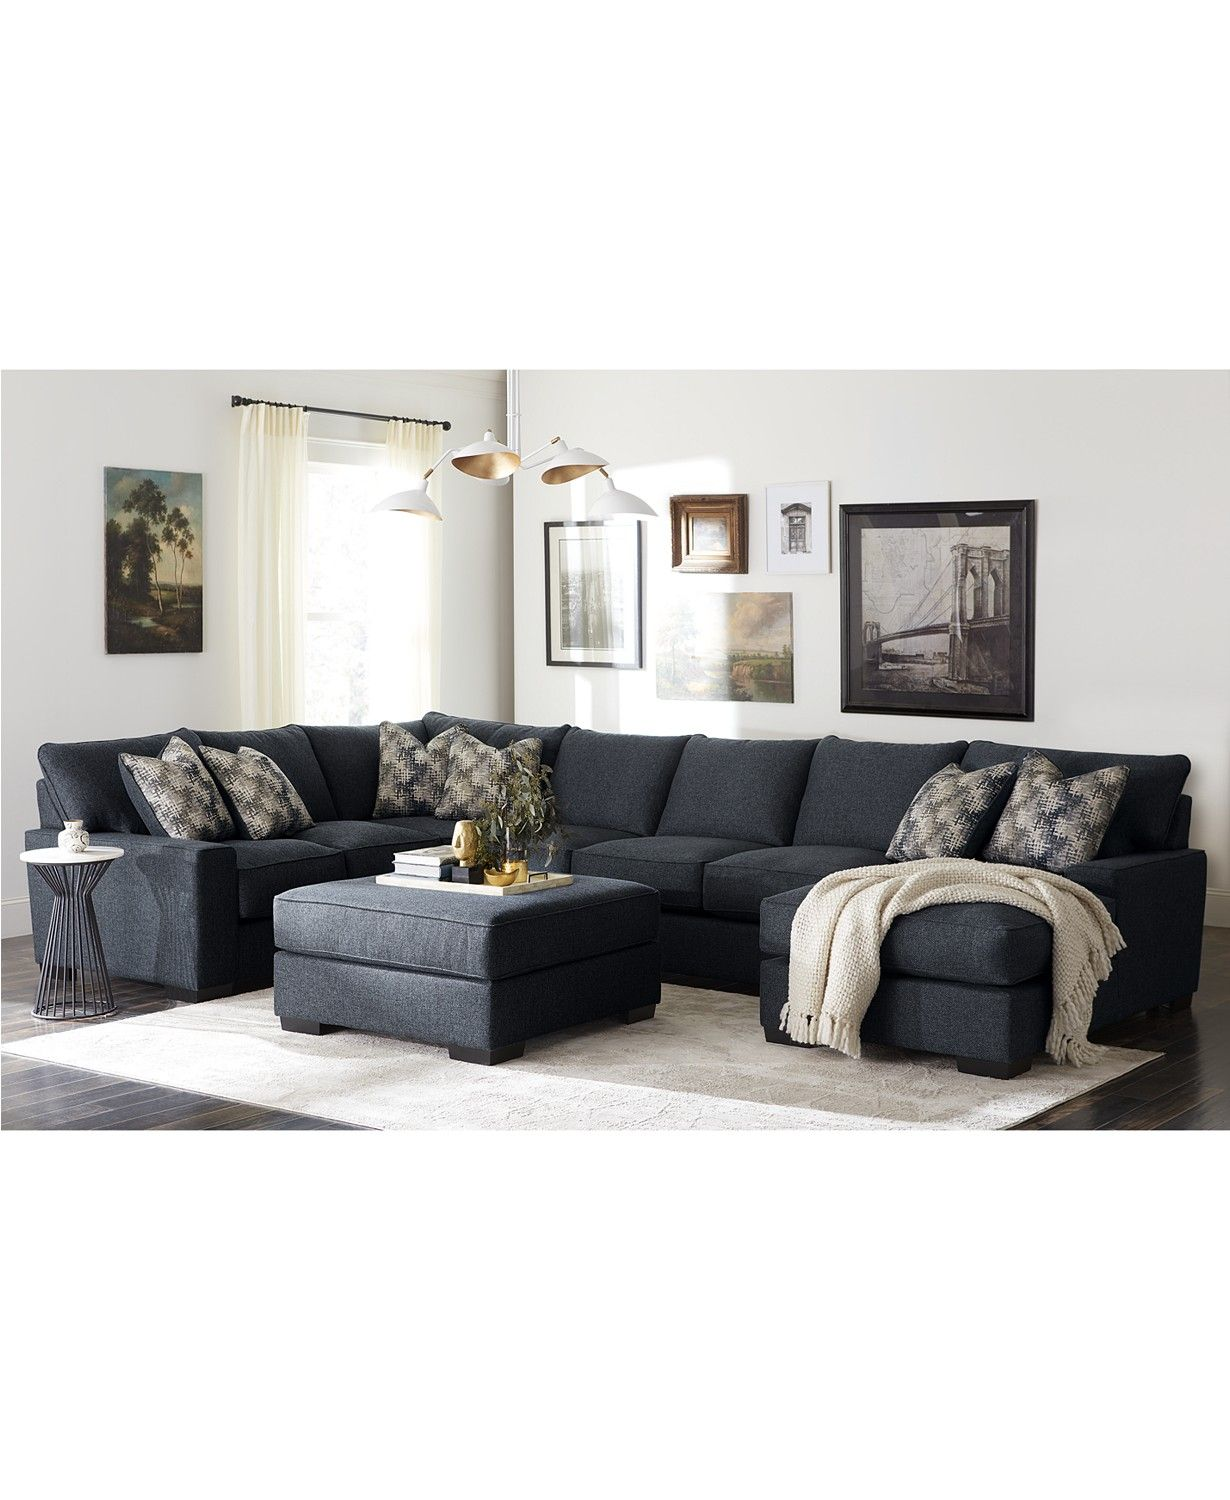 Furniture Tuni Fabric Sectional Sofa Collection Created For